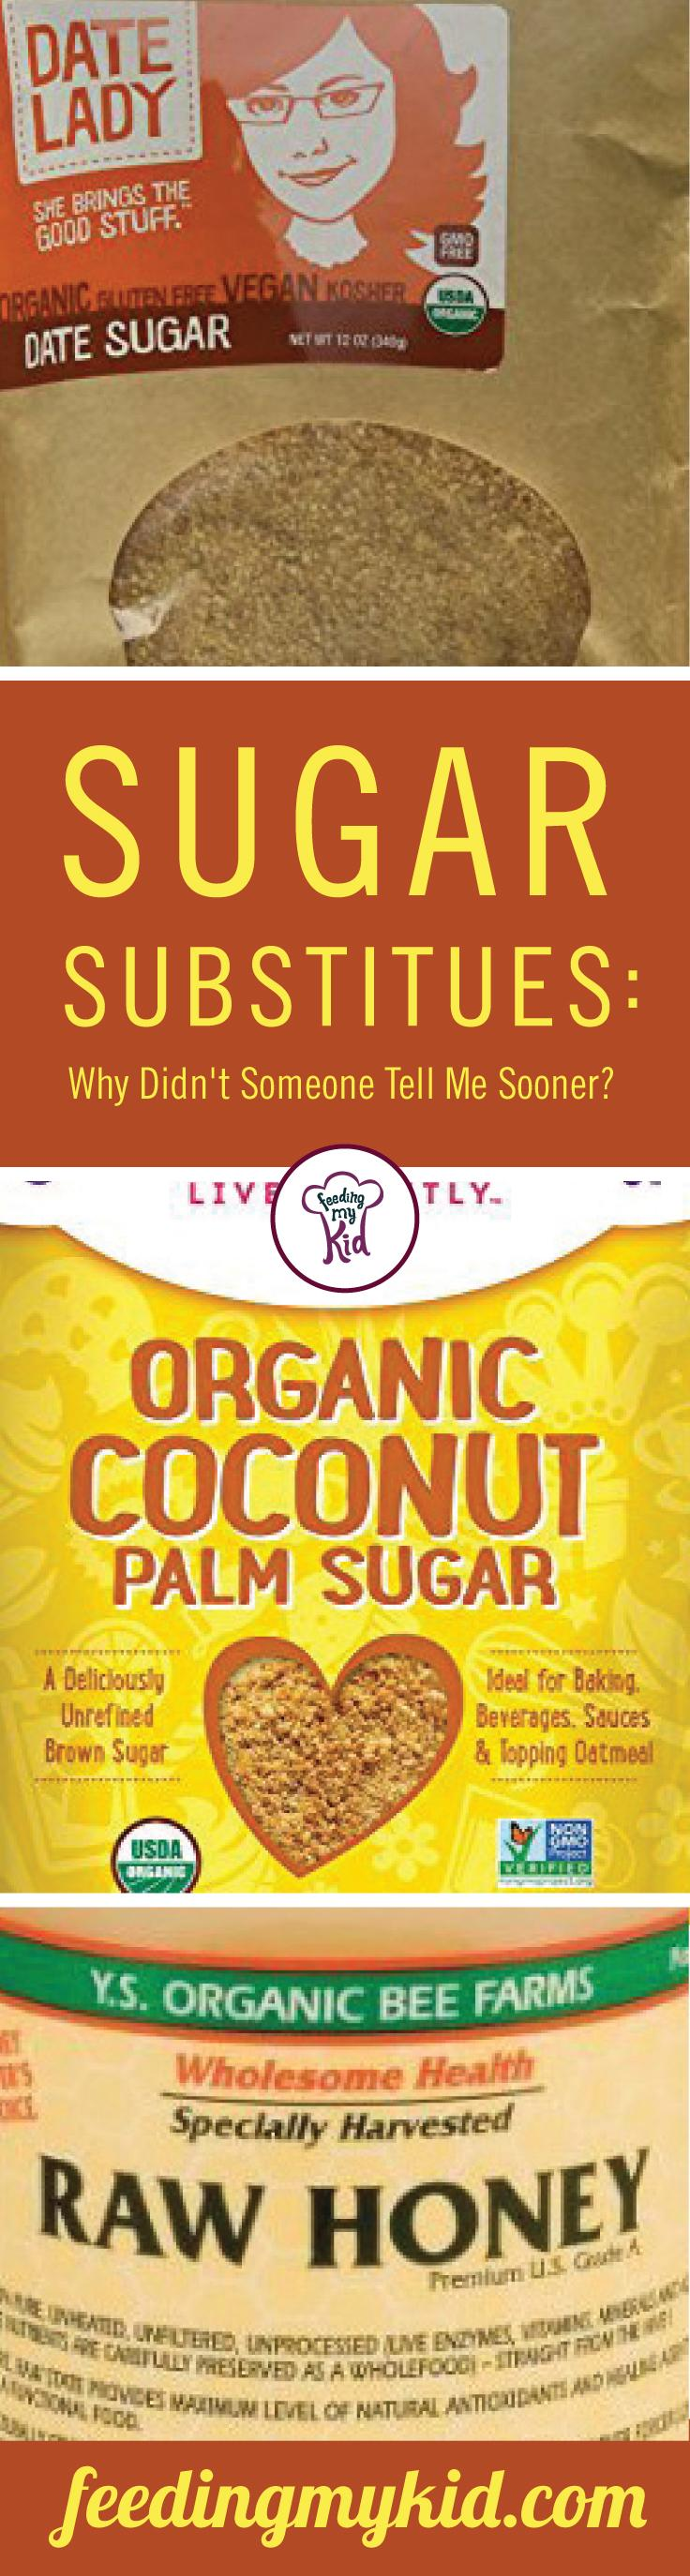 Sugar Substitutes: Why Didn't Someone Tell Me Sooner? - This is a must read! We caution you to beware of sugar's pen names. Although the ingredient list might look healthy, it could be loaded with more sugar components than you think. Luckily, for those of us that battle constant sweet cravings, Mother Nature herself has organic sugary gems that are loaded with health benefits! This is a must pin! #fmk #sugar